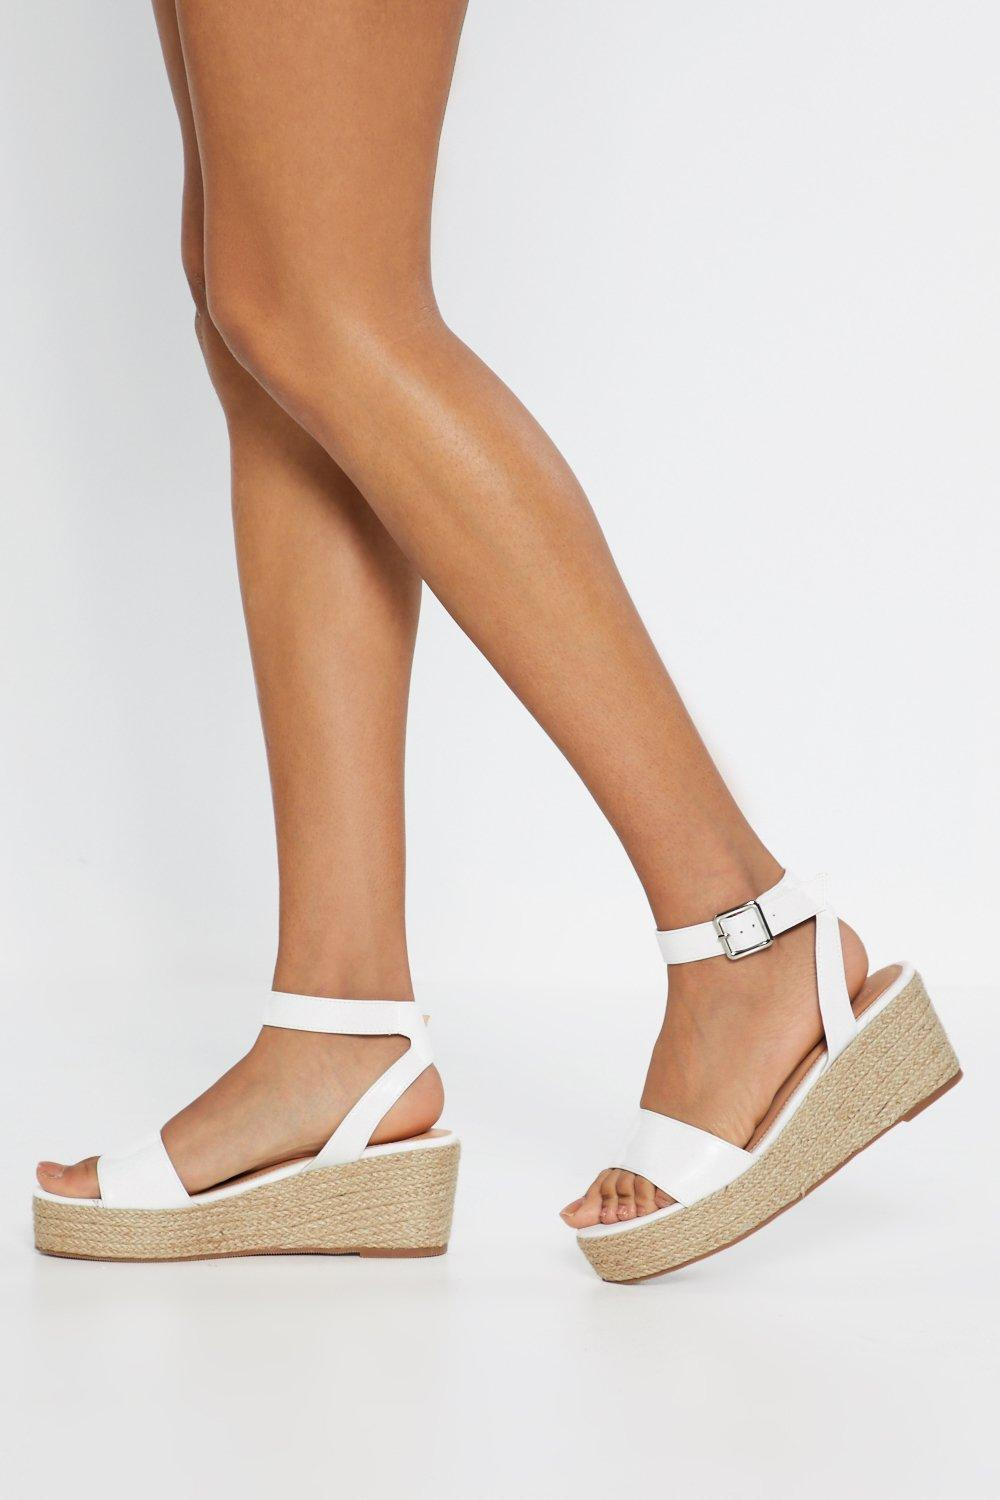 f554278bc234a Espadrille There Be Sun Wedge Sandals | Shop Clothes at Nasty Gal!